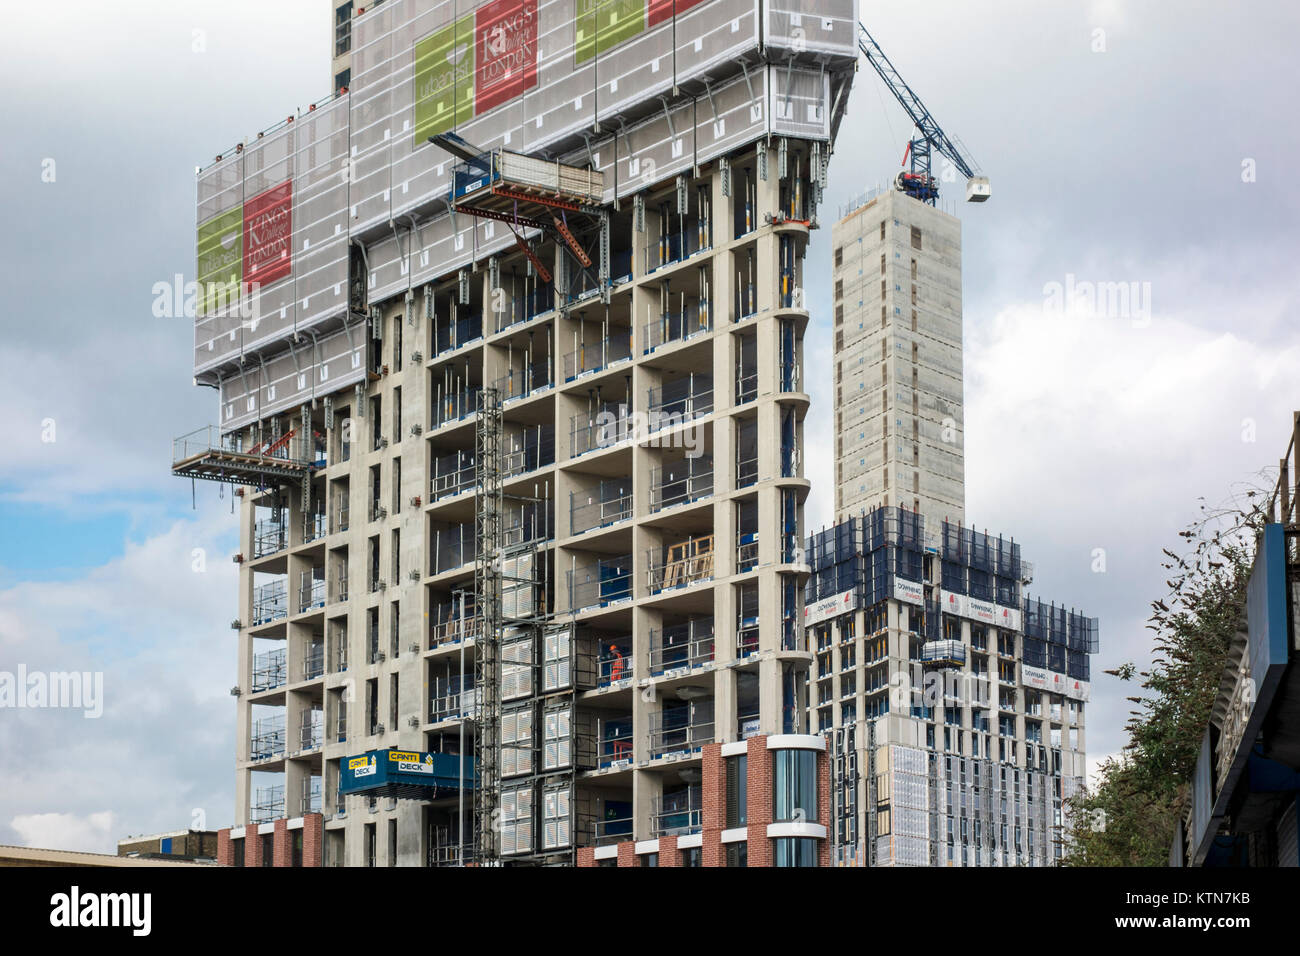 Development in Nine Elms area, London, from Wandsworth Road. construction, towers, cranes - Stock Image